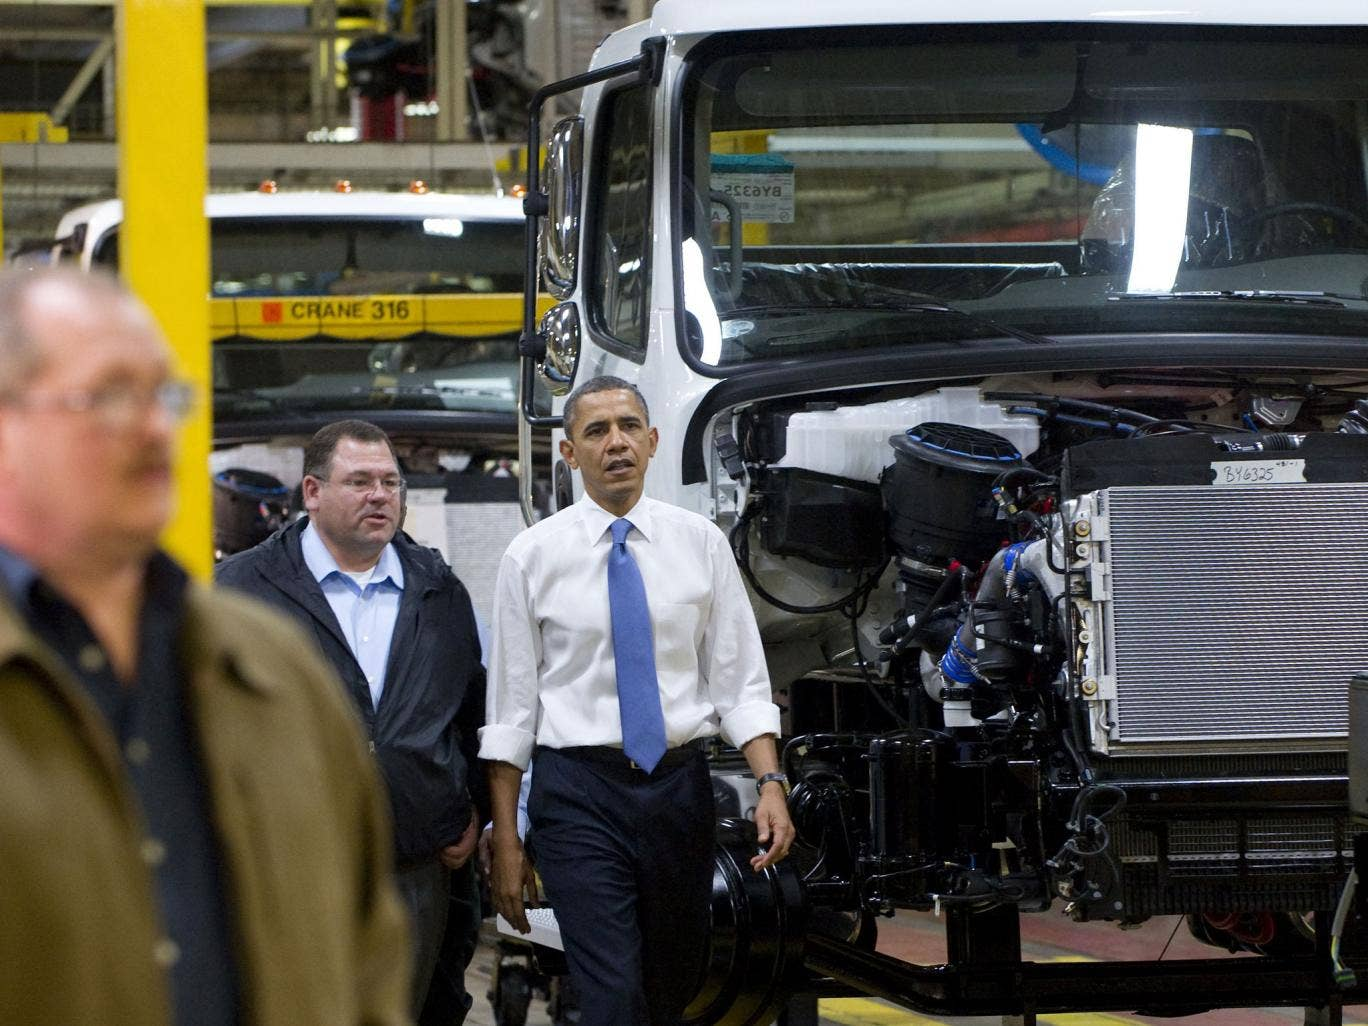 President Obama, here touring a truck factory, will soon have to turn his attention to the US economy